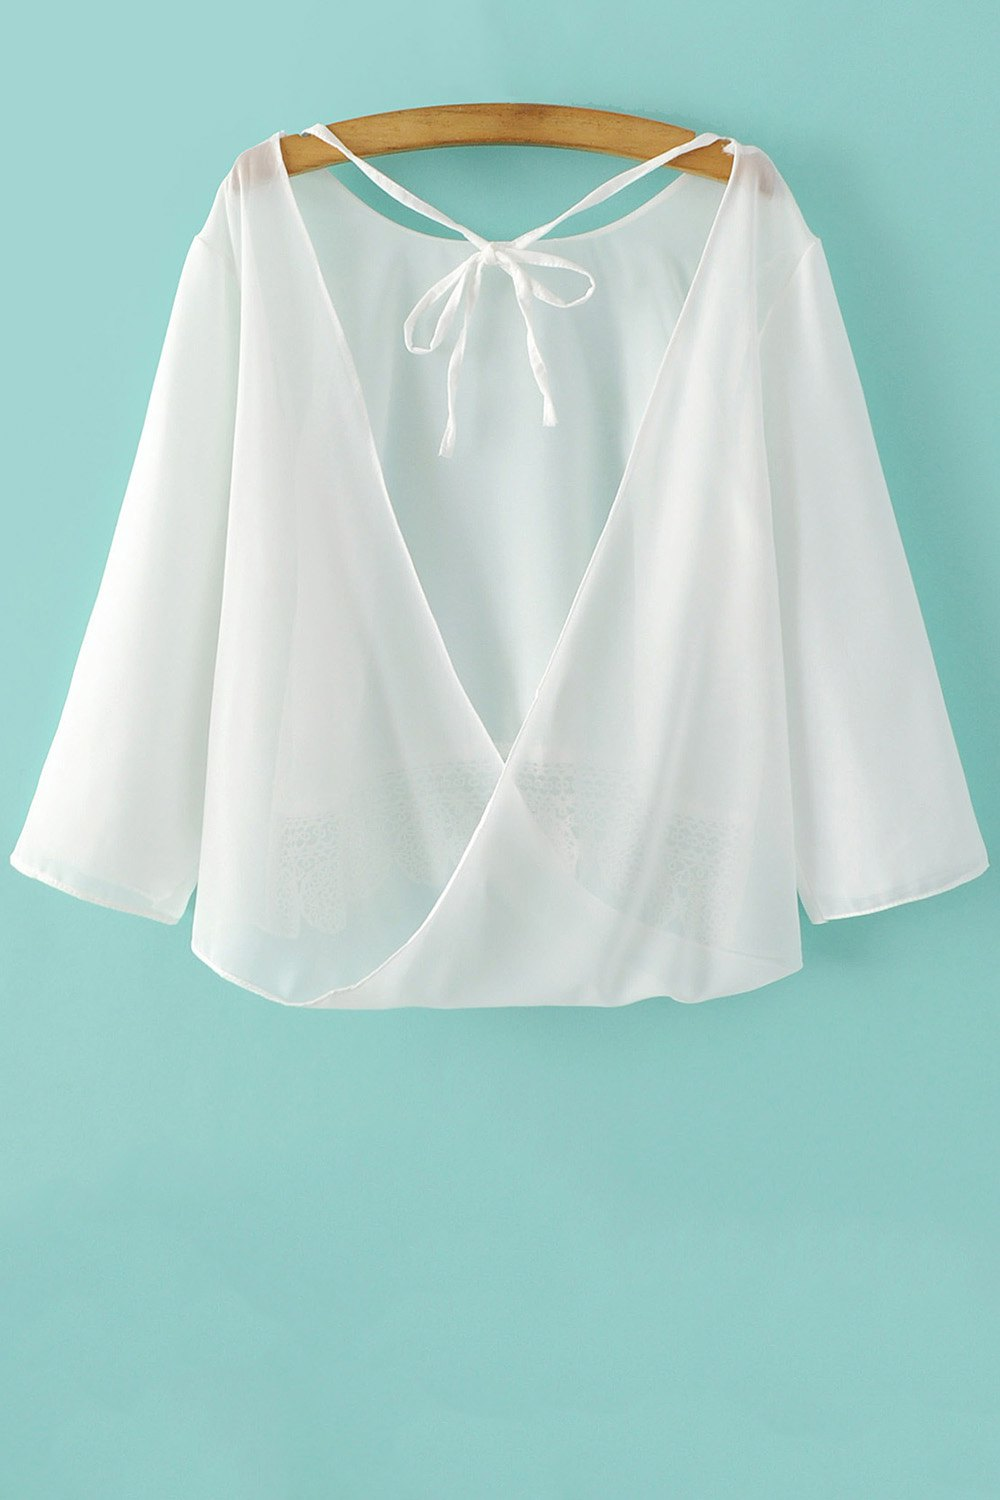 Back Cut 3/4 Sleeve Lace Spliced Blouse - WHITE S